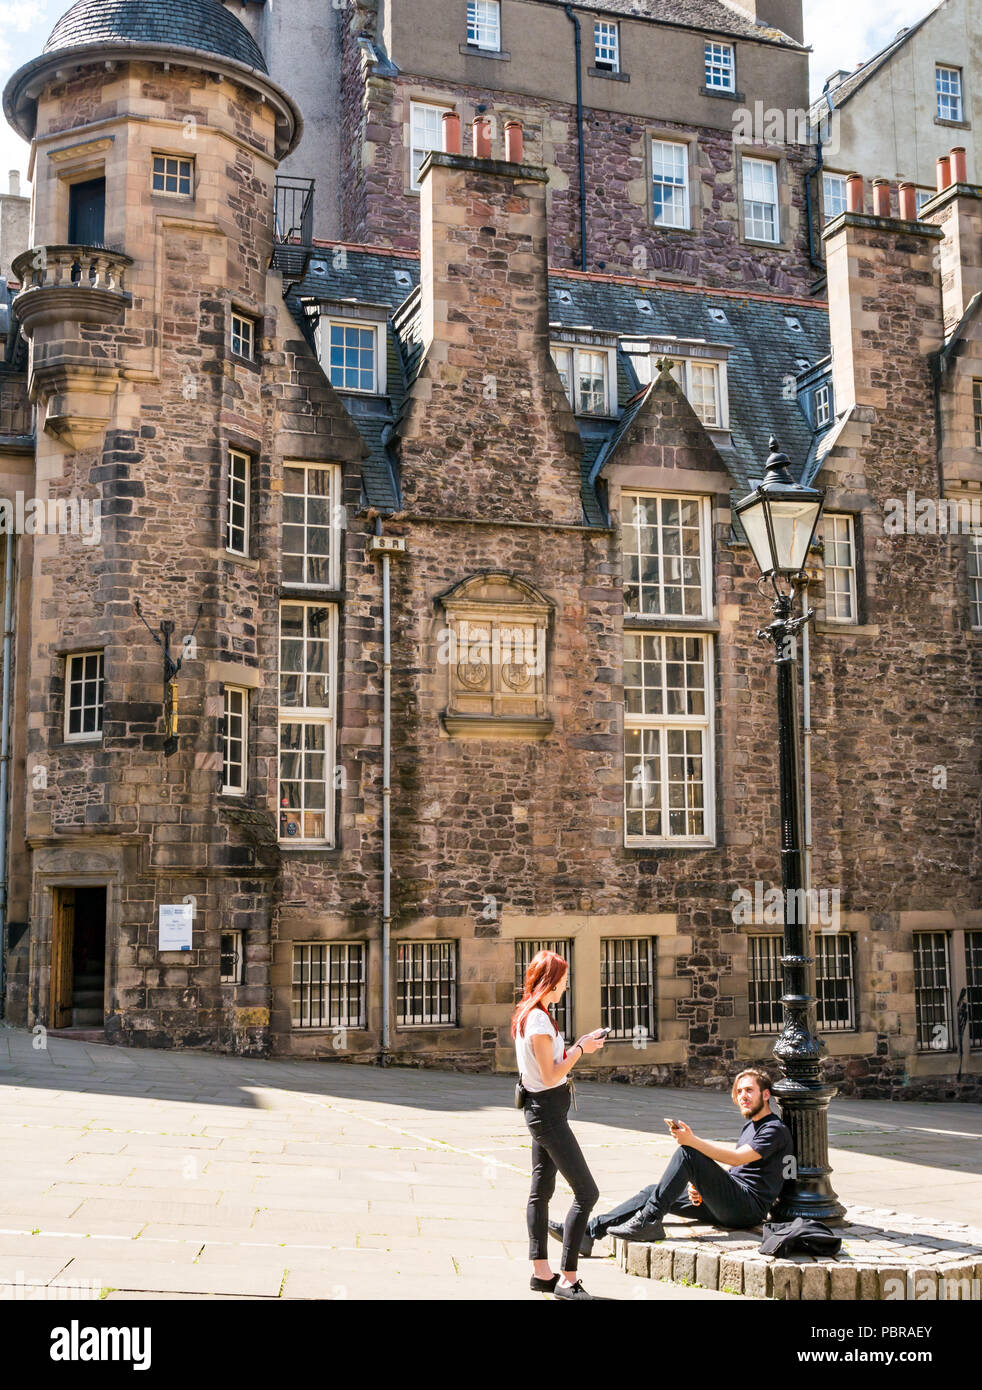 Young couple by old fashioned lamp post relax looking at mobile phones, Makar's Court, Writer's Museum, Edinburgh, Scotland, UK - Stock Image